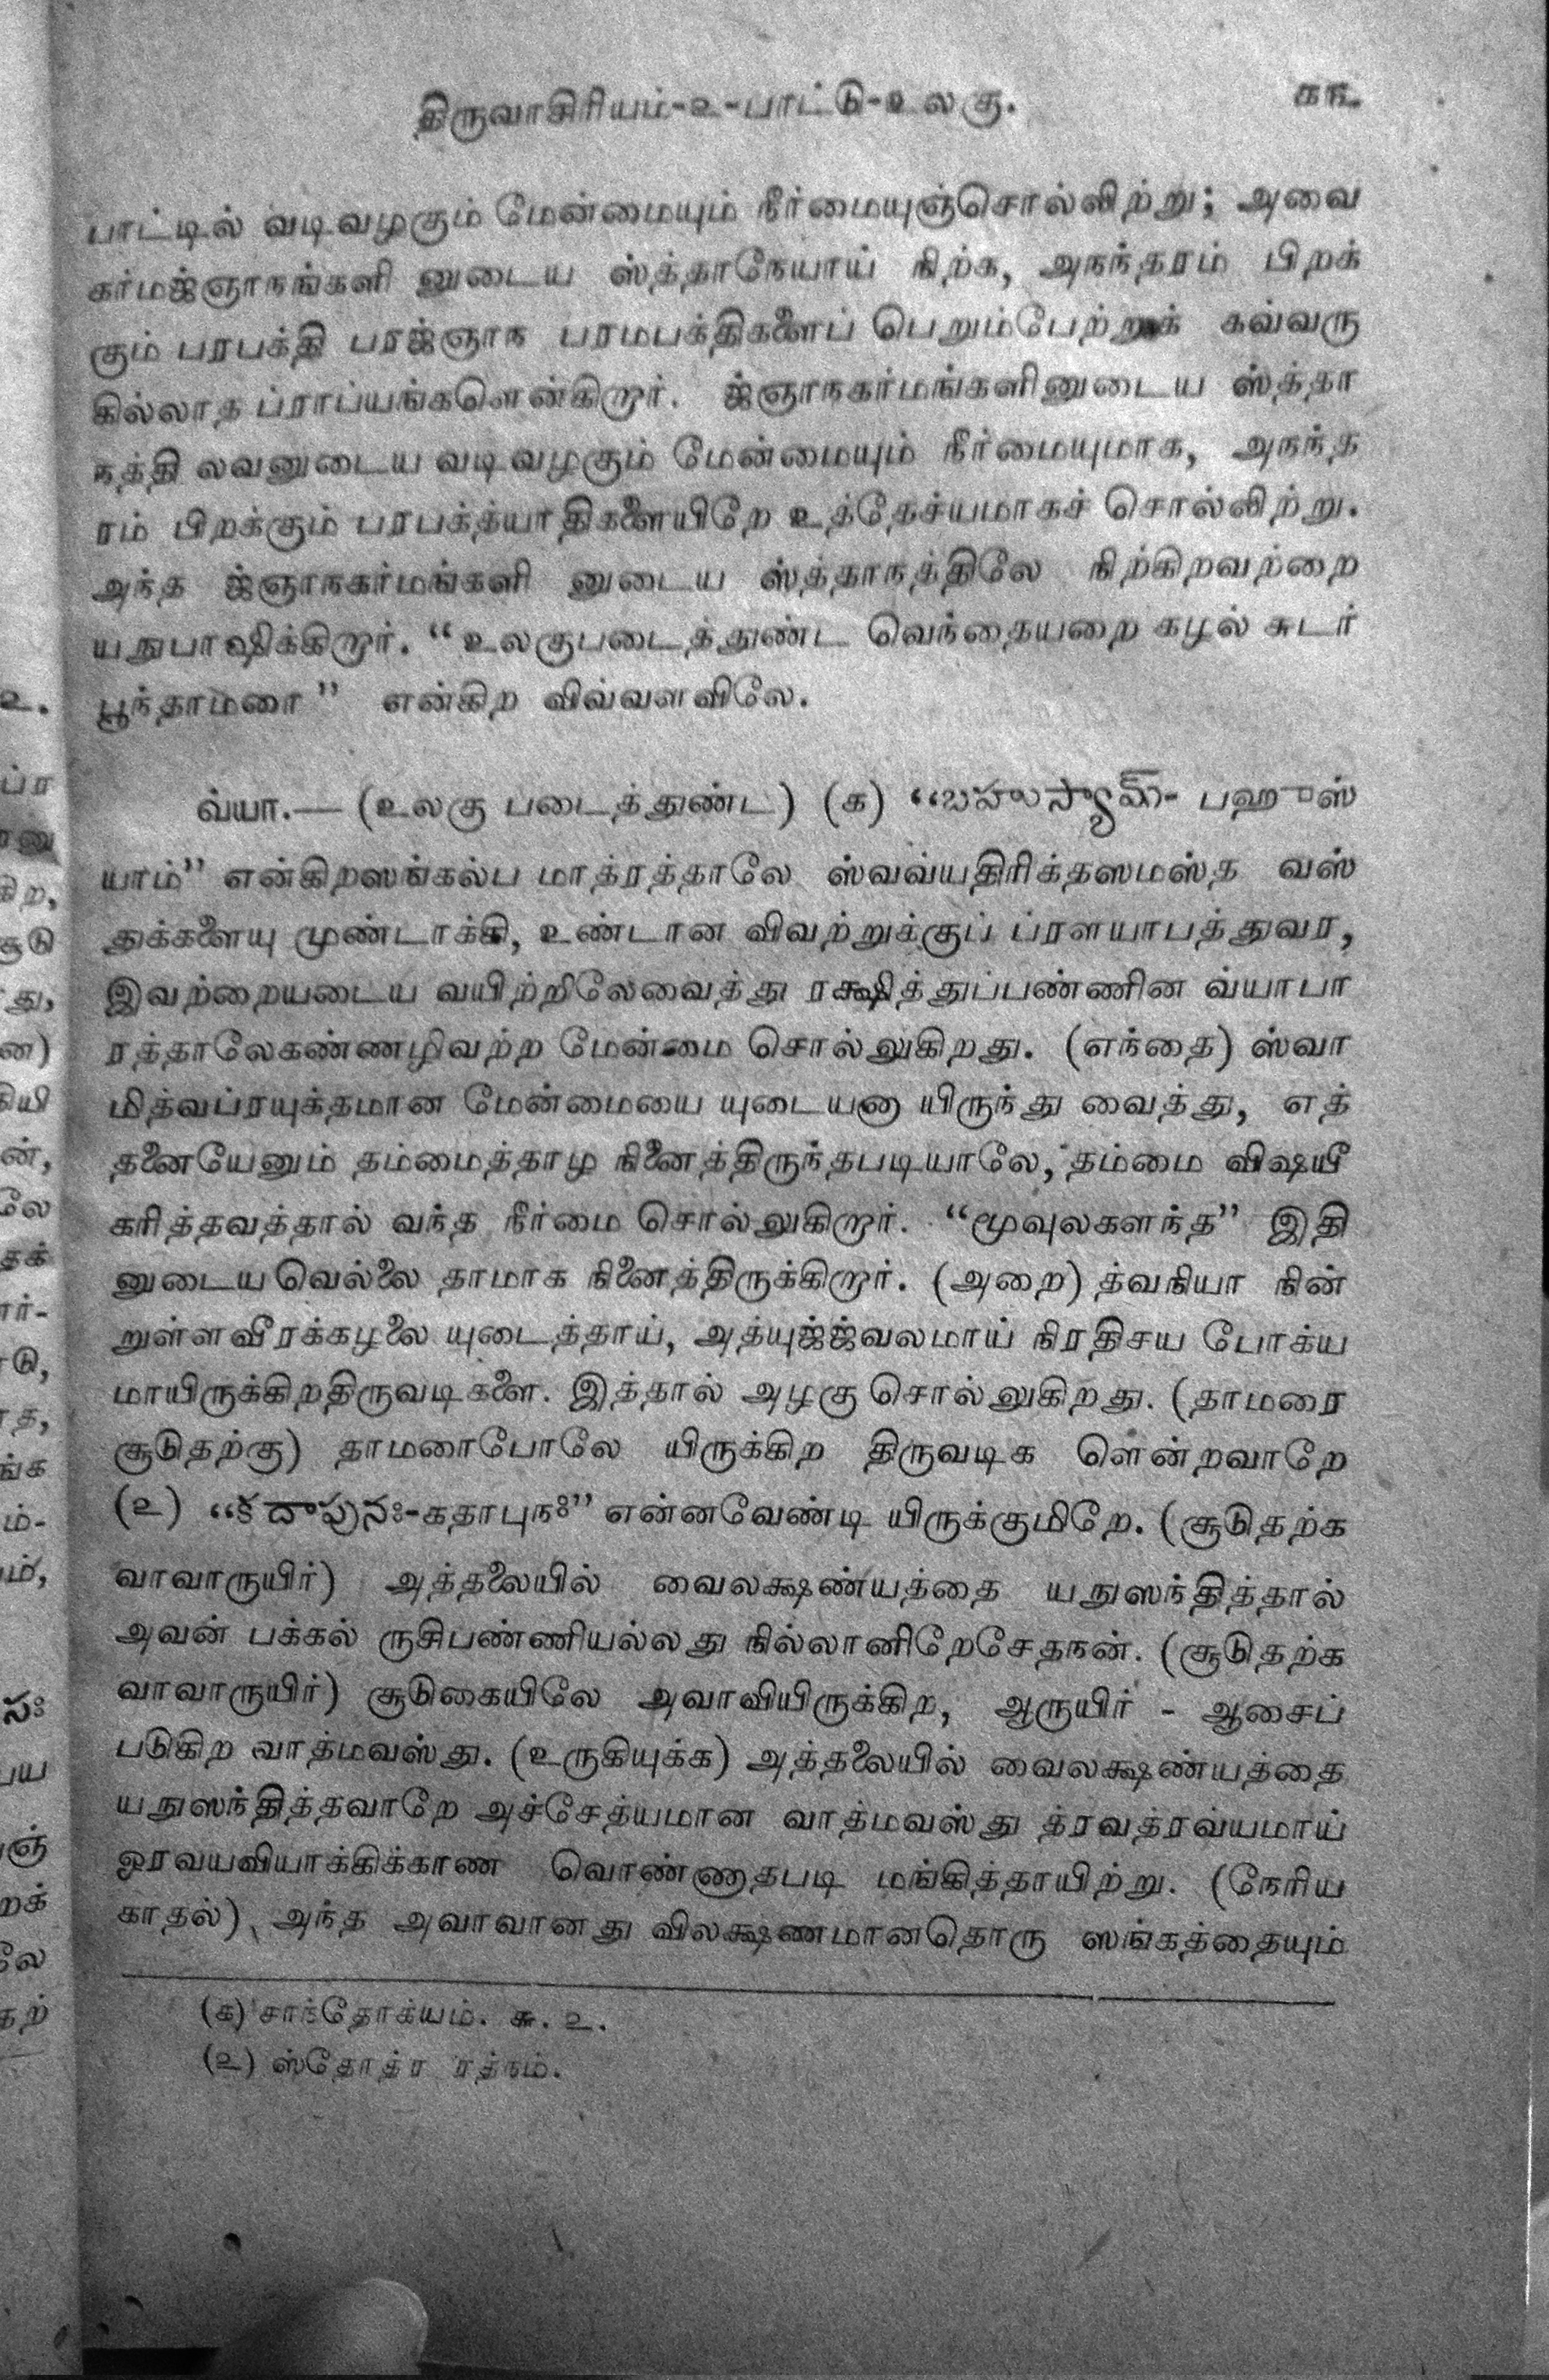 essay about thirukkural in tamil School of indian studies department of tamil studies thiruvalluvar day - 2018 the mahatma gandhi institute is organising essay and thirukkural recitation competitions at national level as part of its annual activities to mark the thiruvalluvar day in january 2018 interesting prizes in cash and books will.